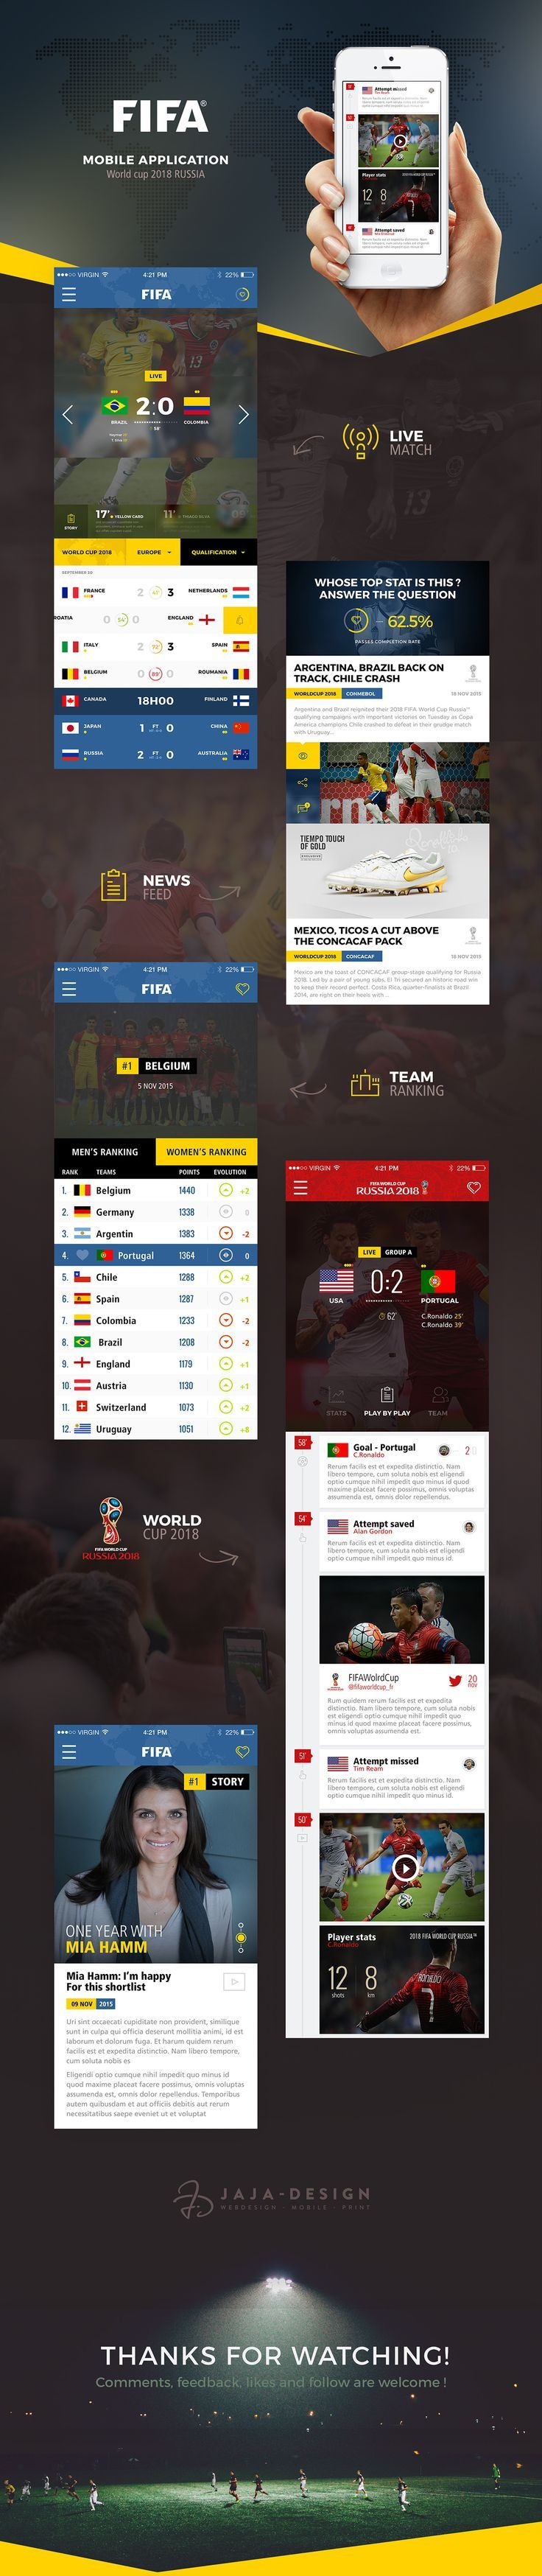 Concept UI design for FIFA Mobile App on Behance